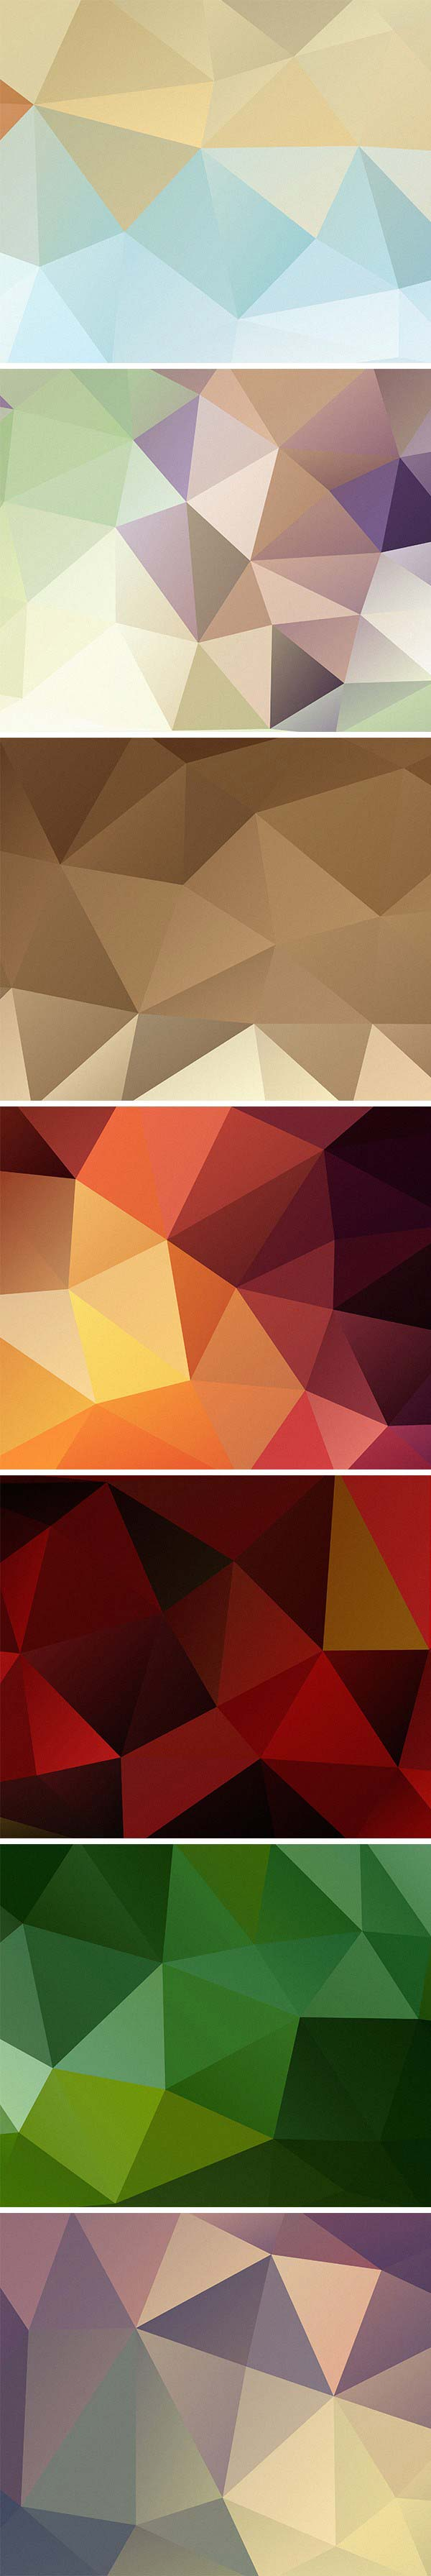 free high definition polygon backgrounds